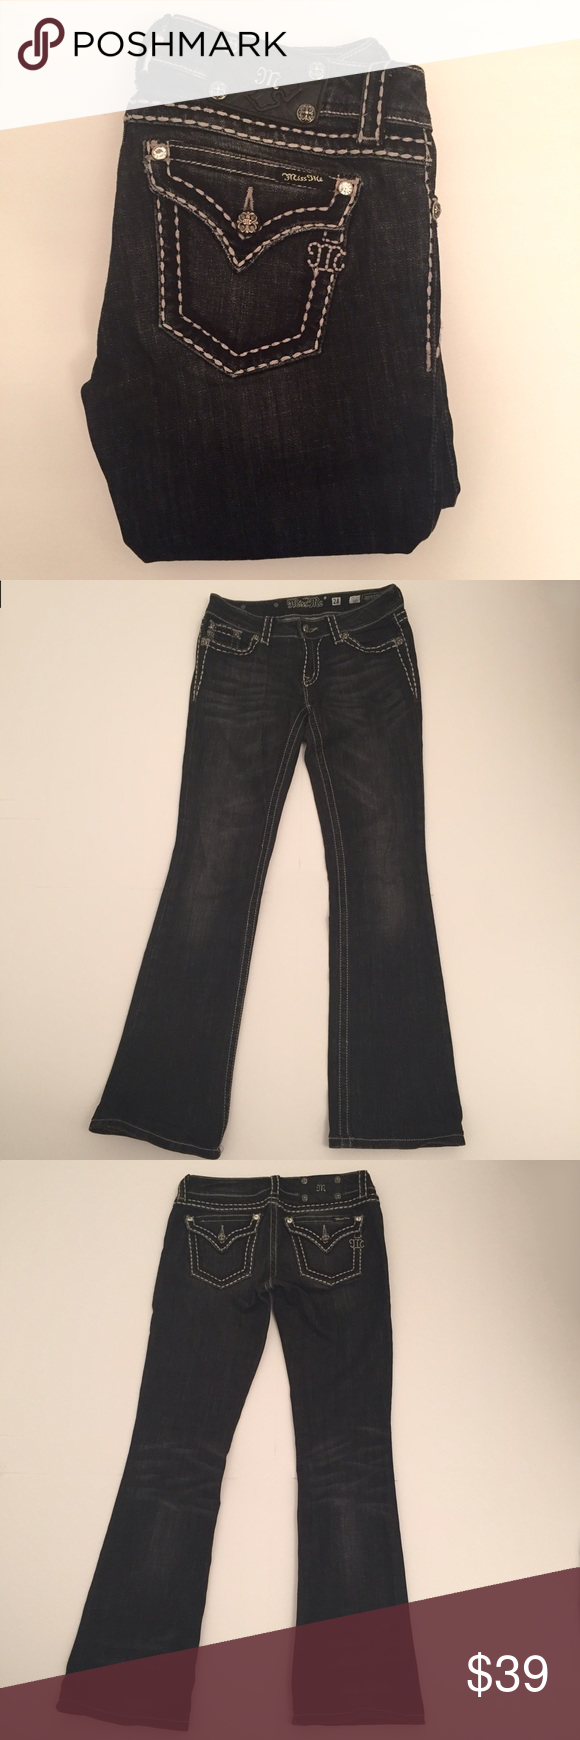 """Miss Me Black Bootcut Jean Style JP5014-5 Black bootcut jean with some whiskering around the thigh area and back of knees and soft fading around the front of the legs/knees. Flap back pockets with button closure. White stitching throughout. Inseam HAS BEEN ALTERED and is approx. 31 1/2"""". These are faded not a true black. No holes, stains or fraying. ❌NO TRADES❌NO PAYPAL❌ Miss Me Jeans Boot Cut"""